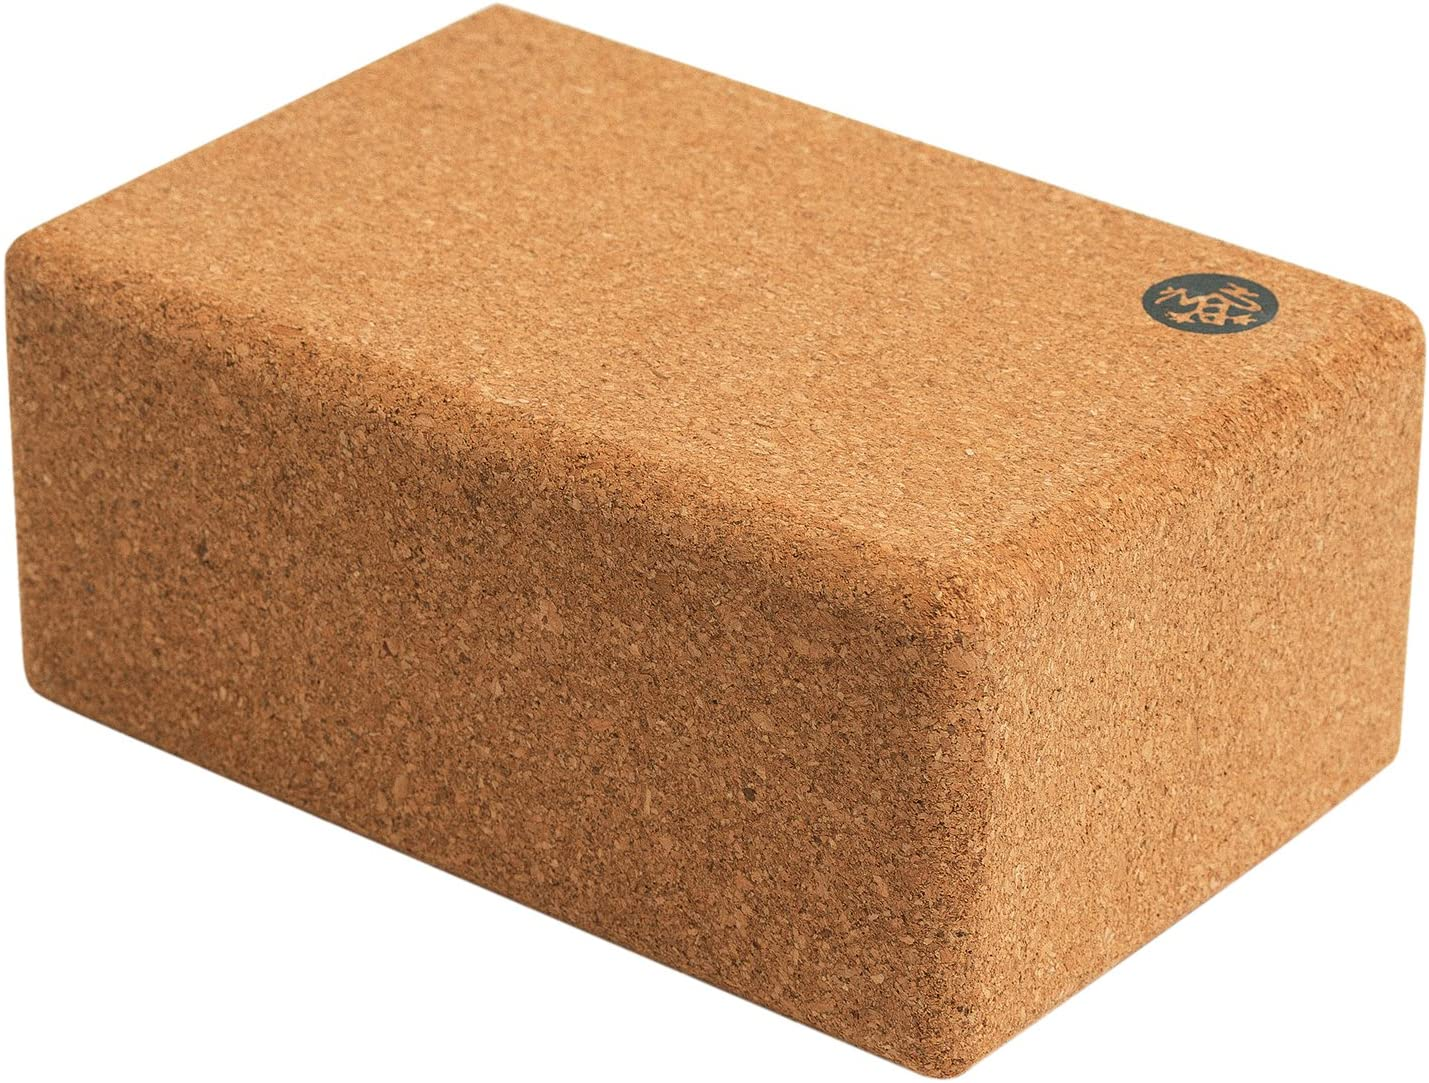 Amazon.com: Manduka Cork Yoga Block: Sports & Outdoors